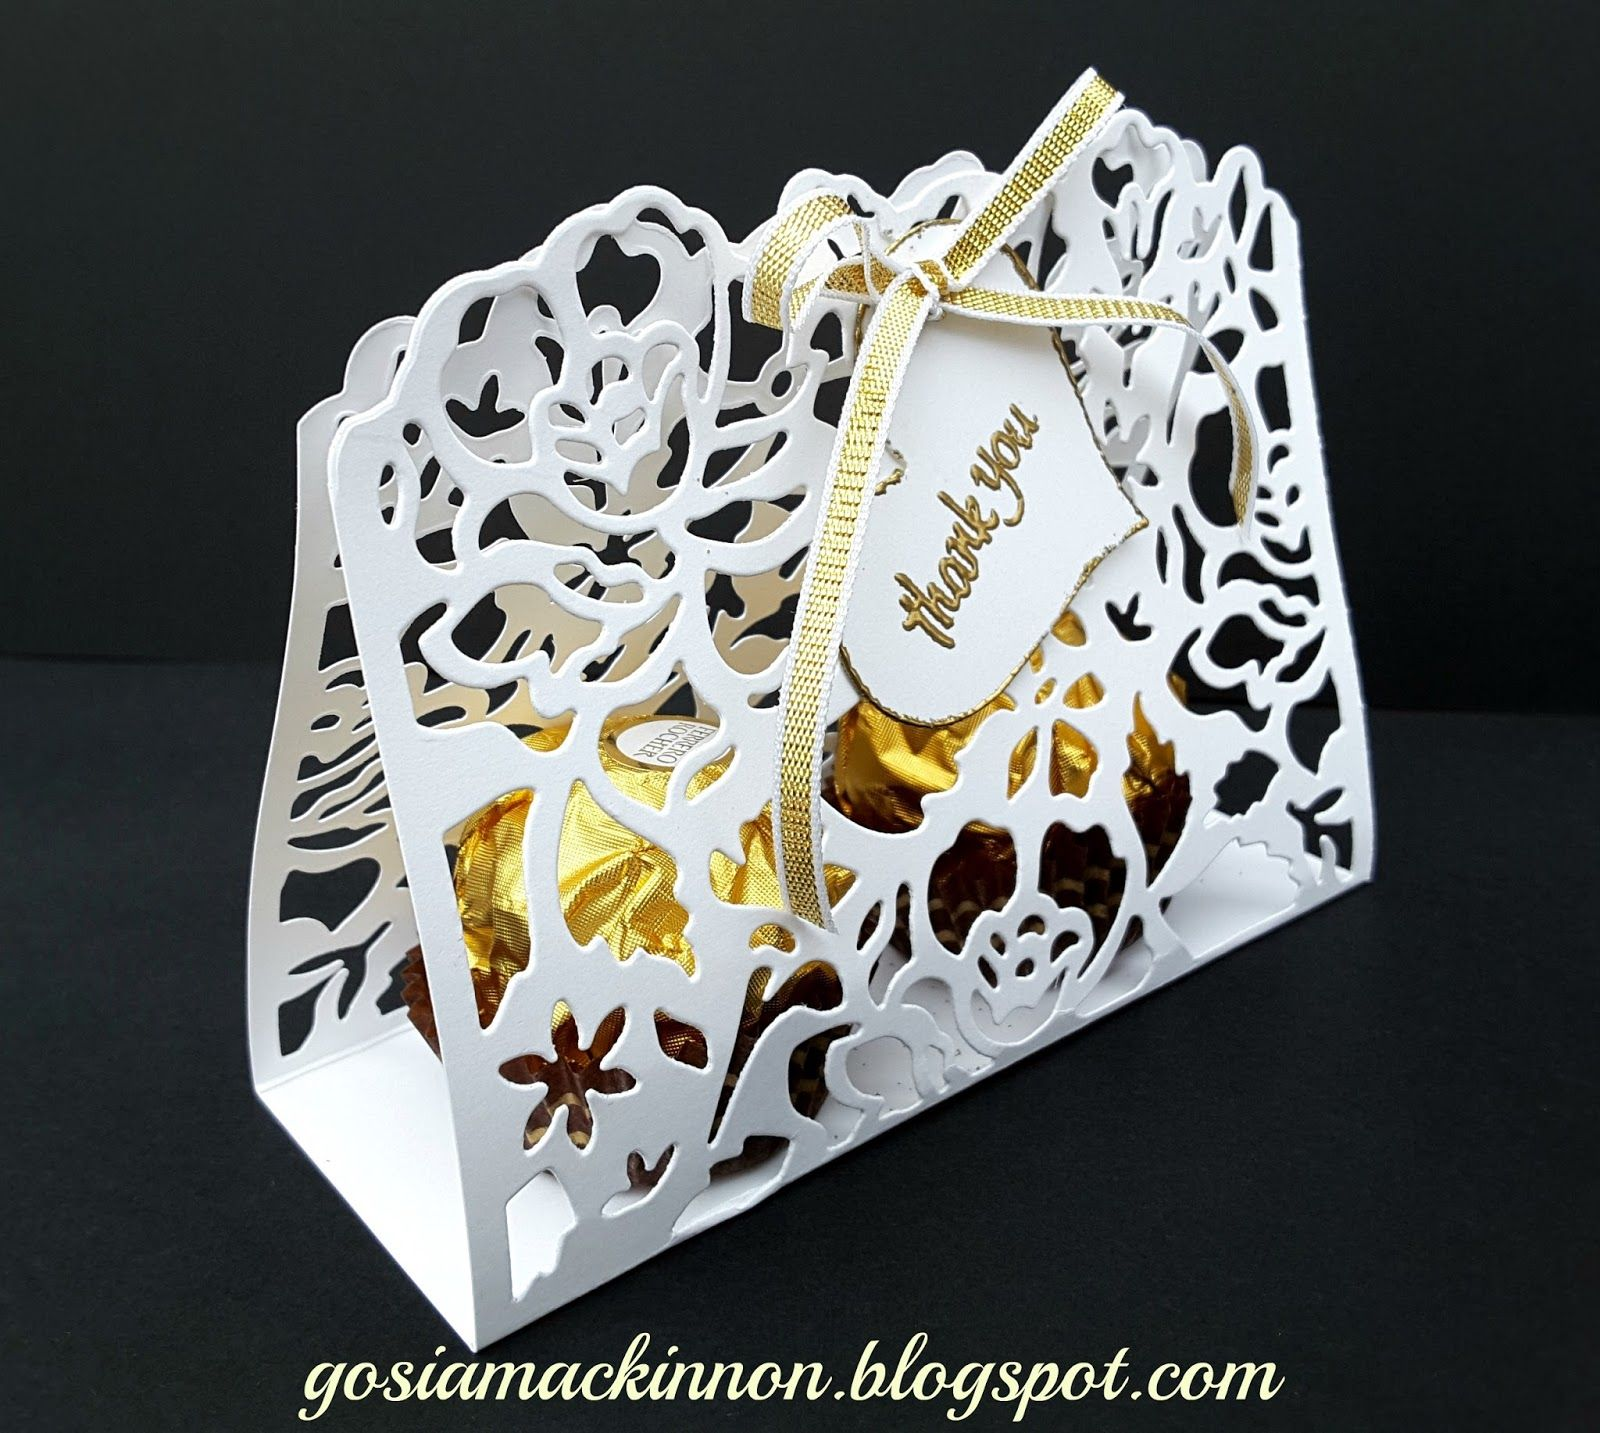 Thank You Gifts At Weddings: Independent Stampin' Up ! Demonstrator Gosia MacKinnon